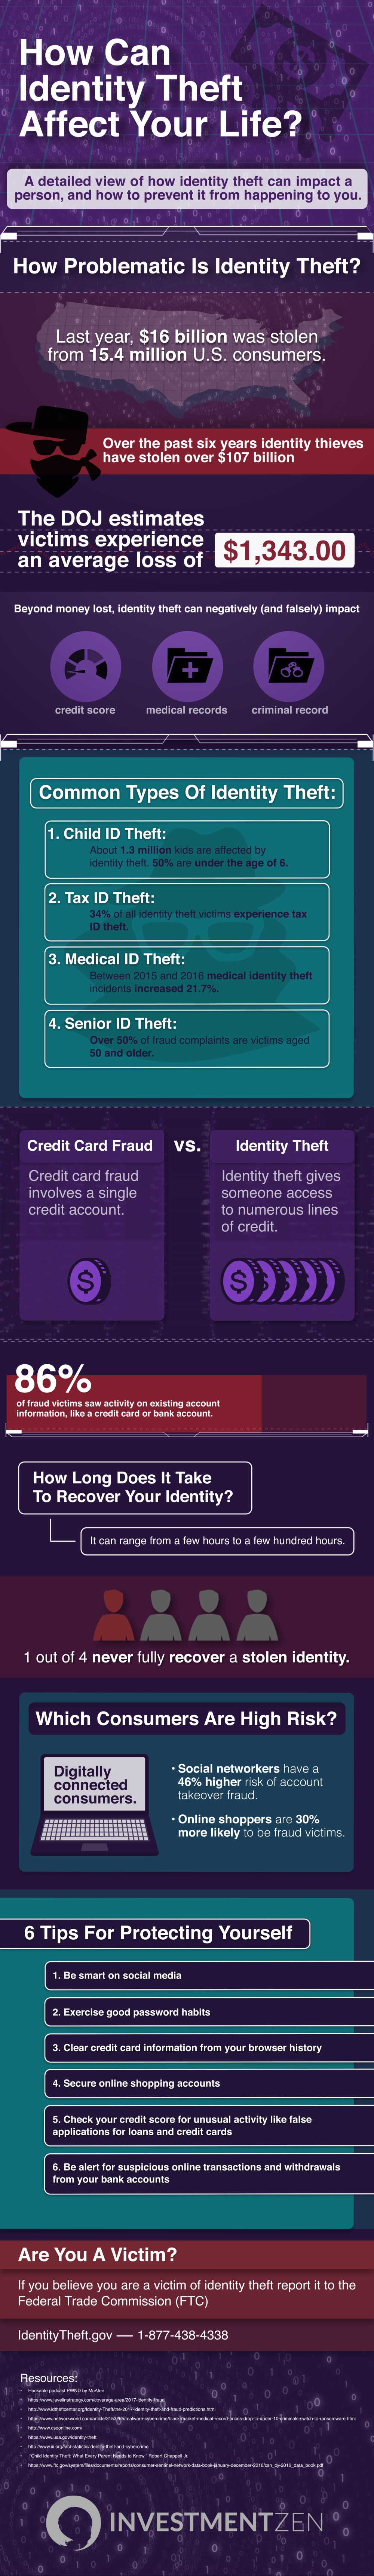 How-much-can-identity-theft-affect-your-life